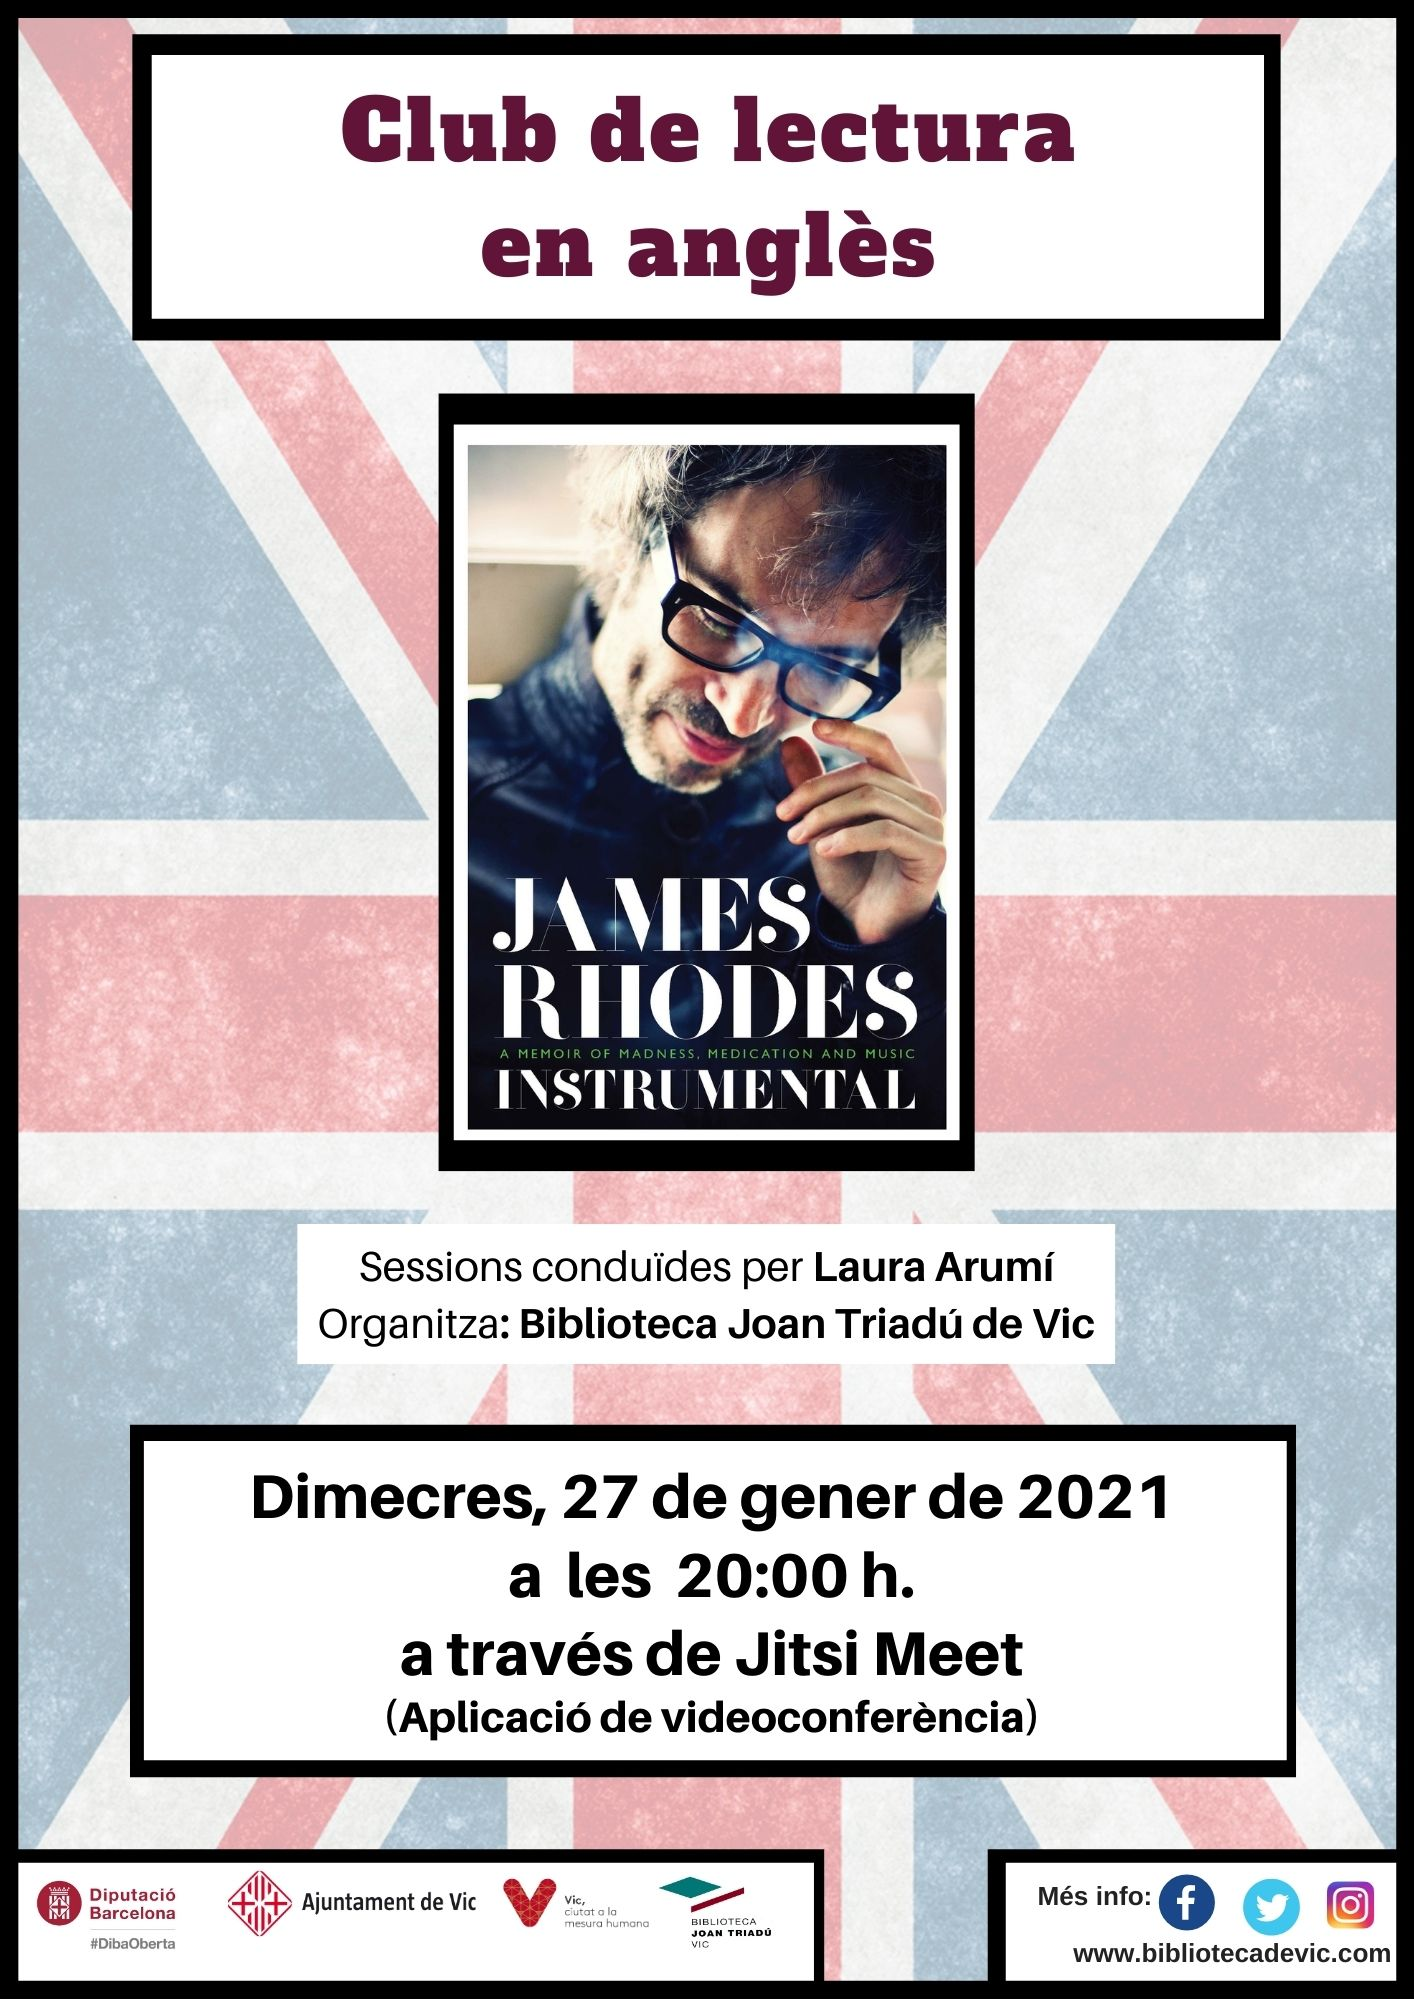 Club de lectura en anglès: Instrumental de James Rhodes